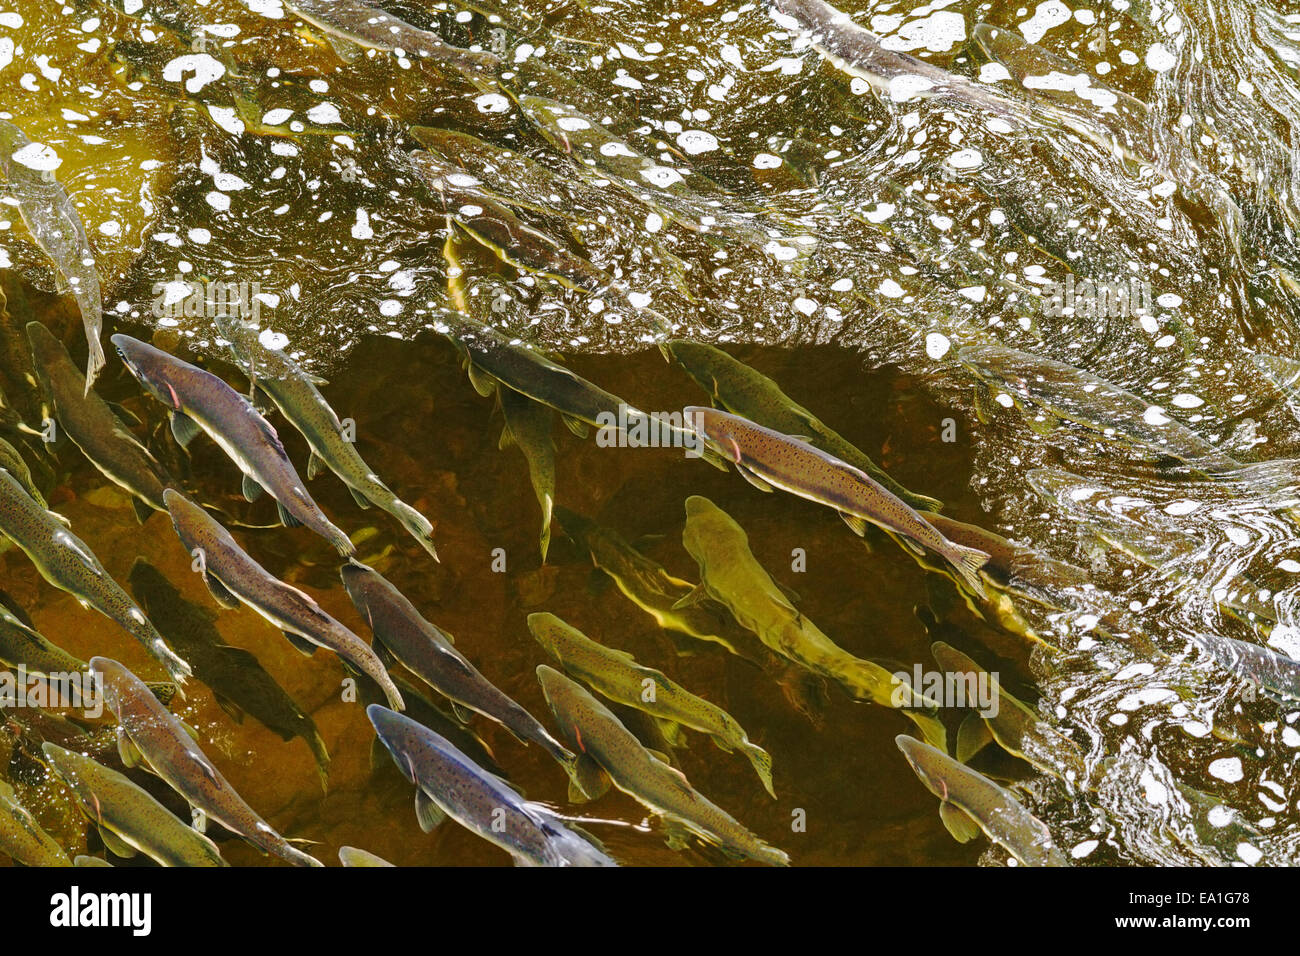 Pacific Pink salmon (Oncorhynchus gorbuscha) returning to their natal river to spawn in the Tongass National Forest, - Stock Image